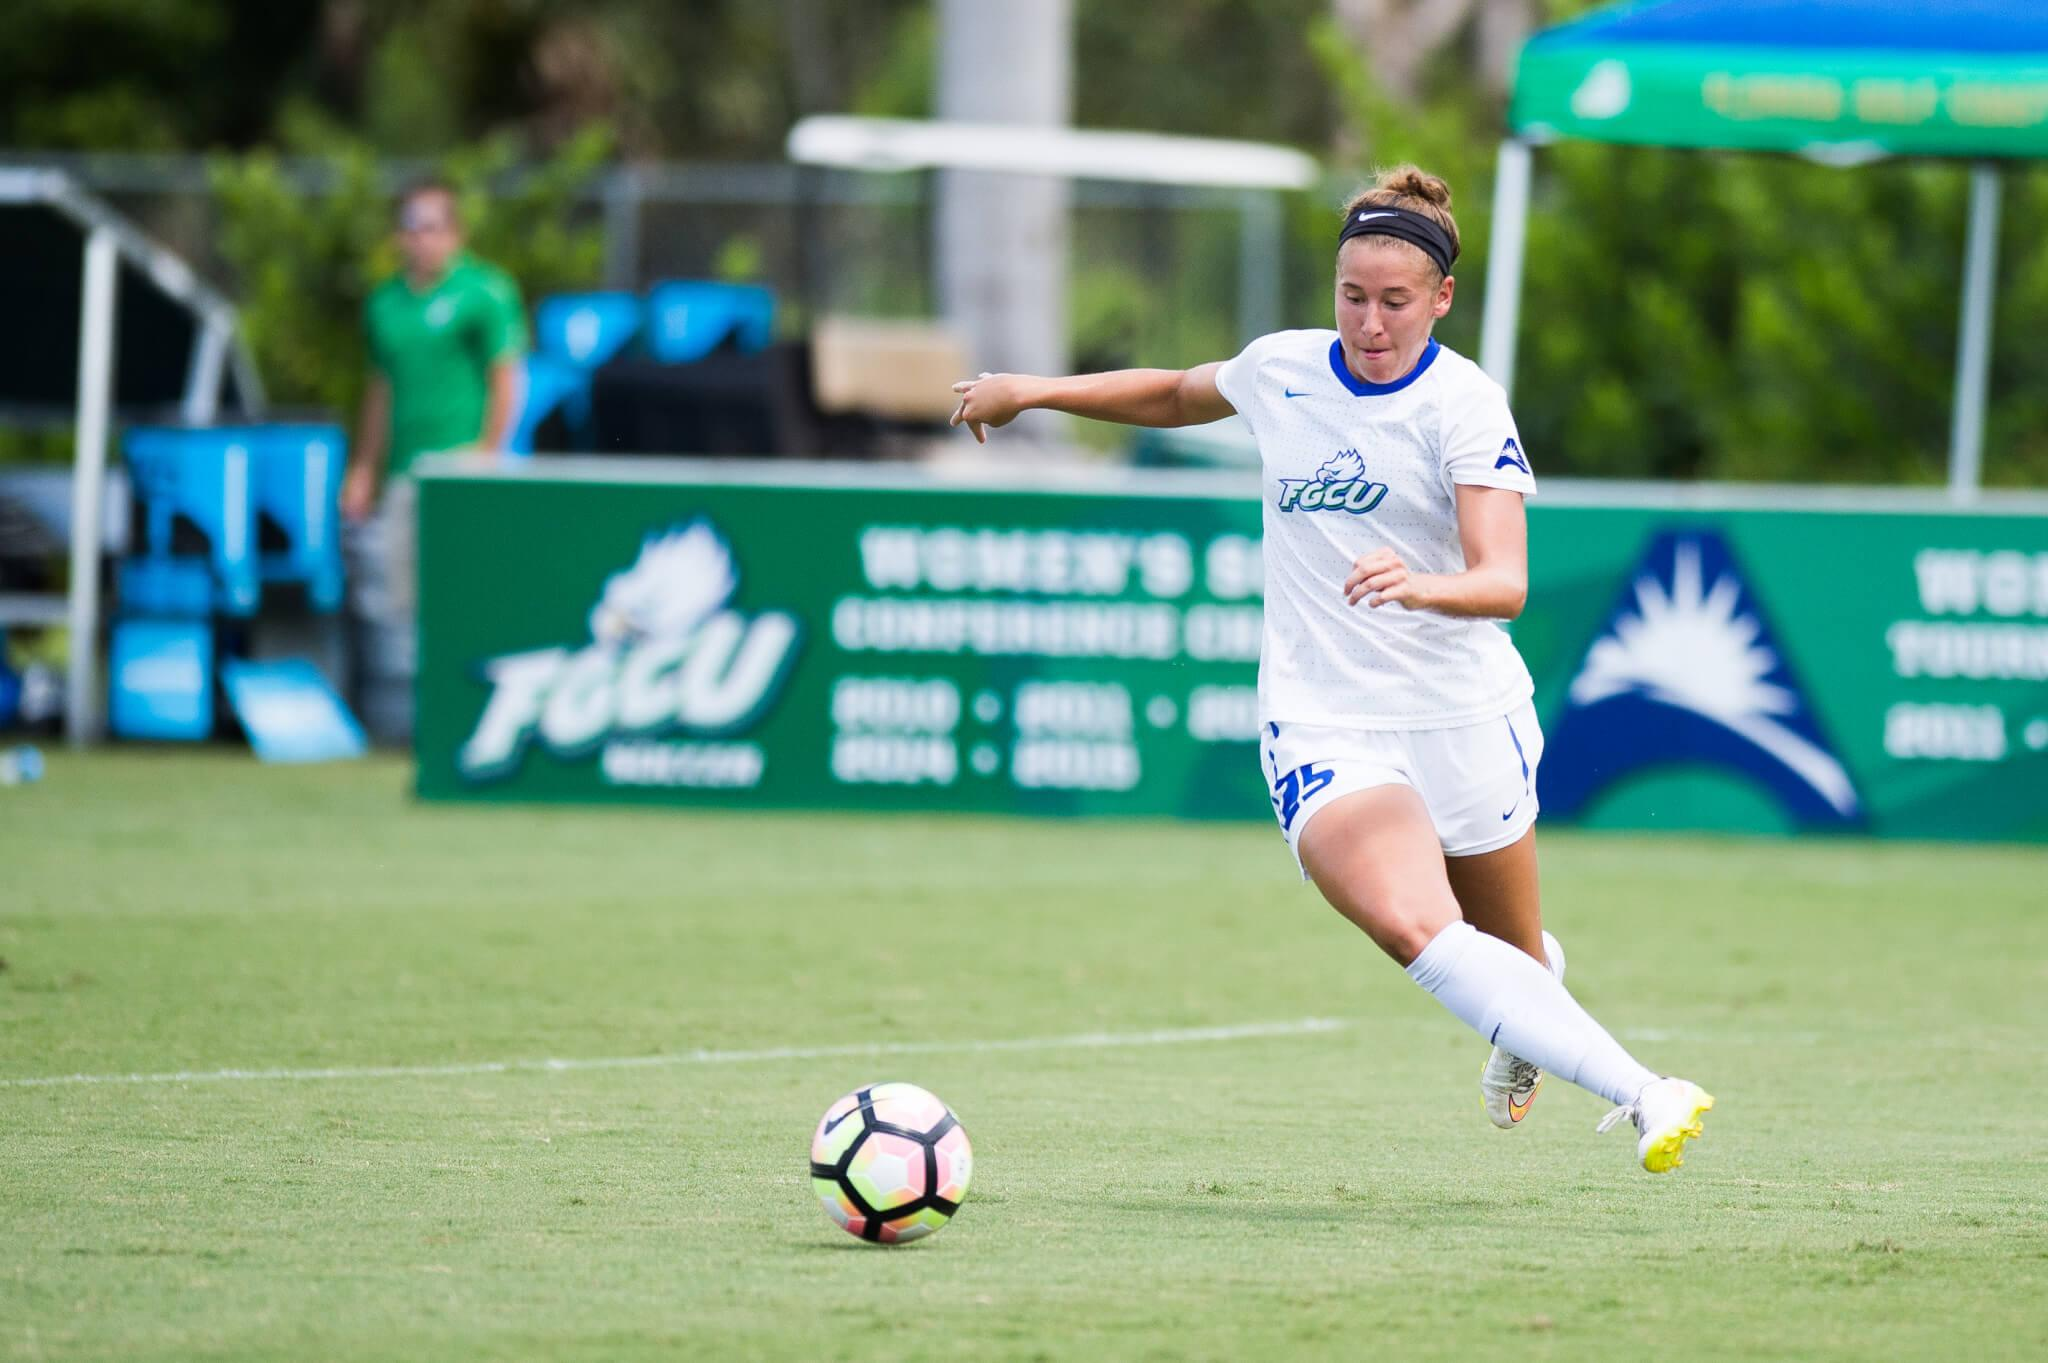 Tabby Tindell earns recognition as a First Team Senior CLASS All-American